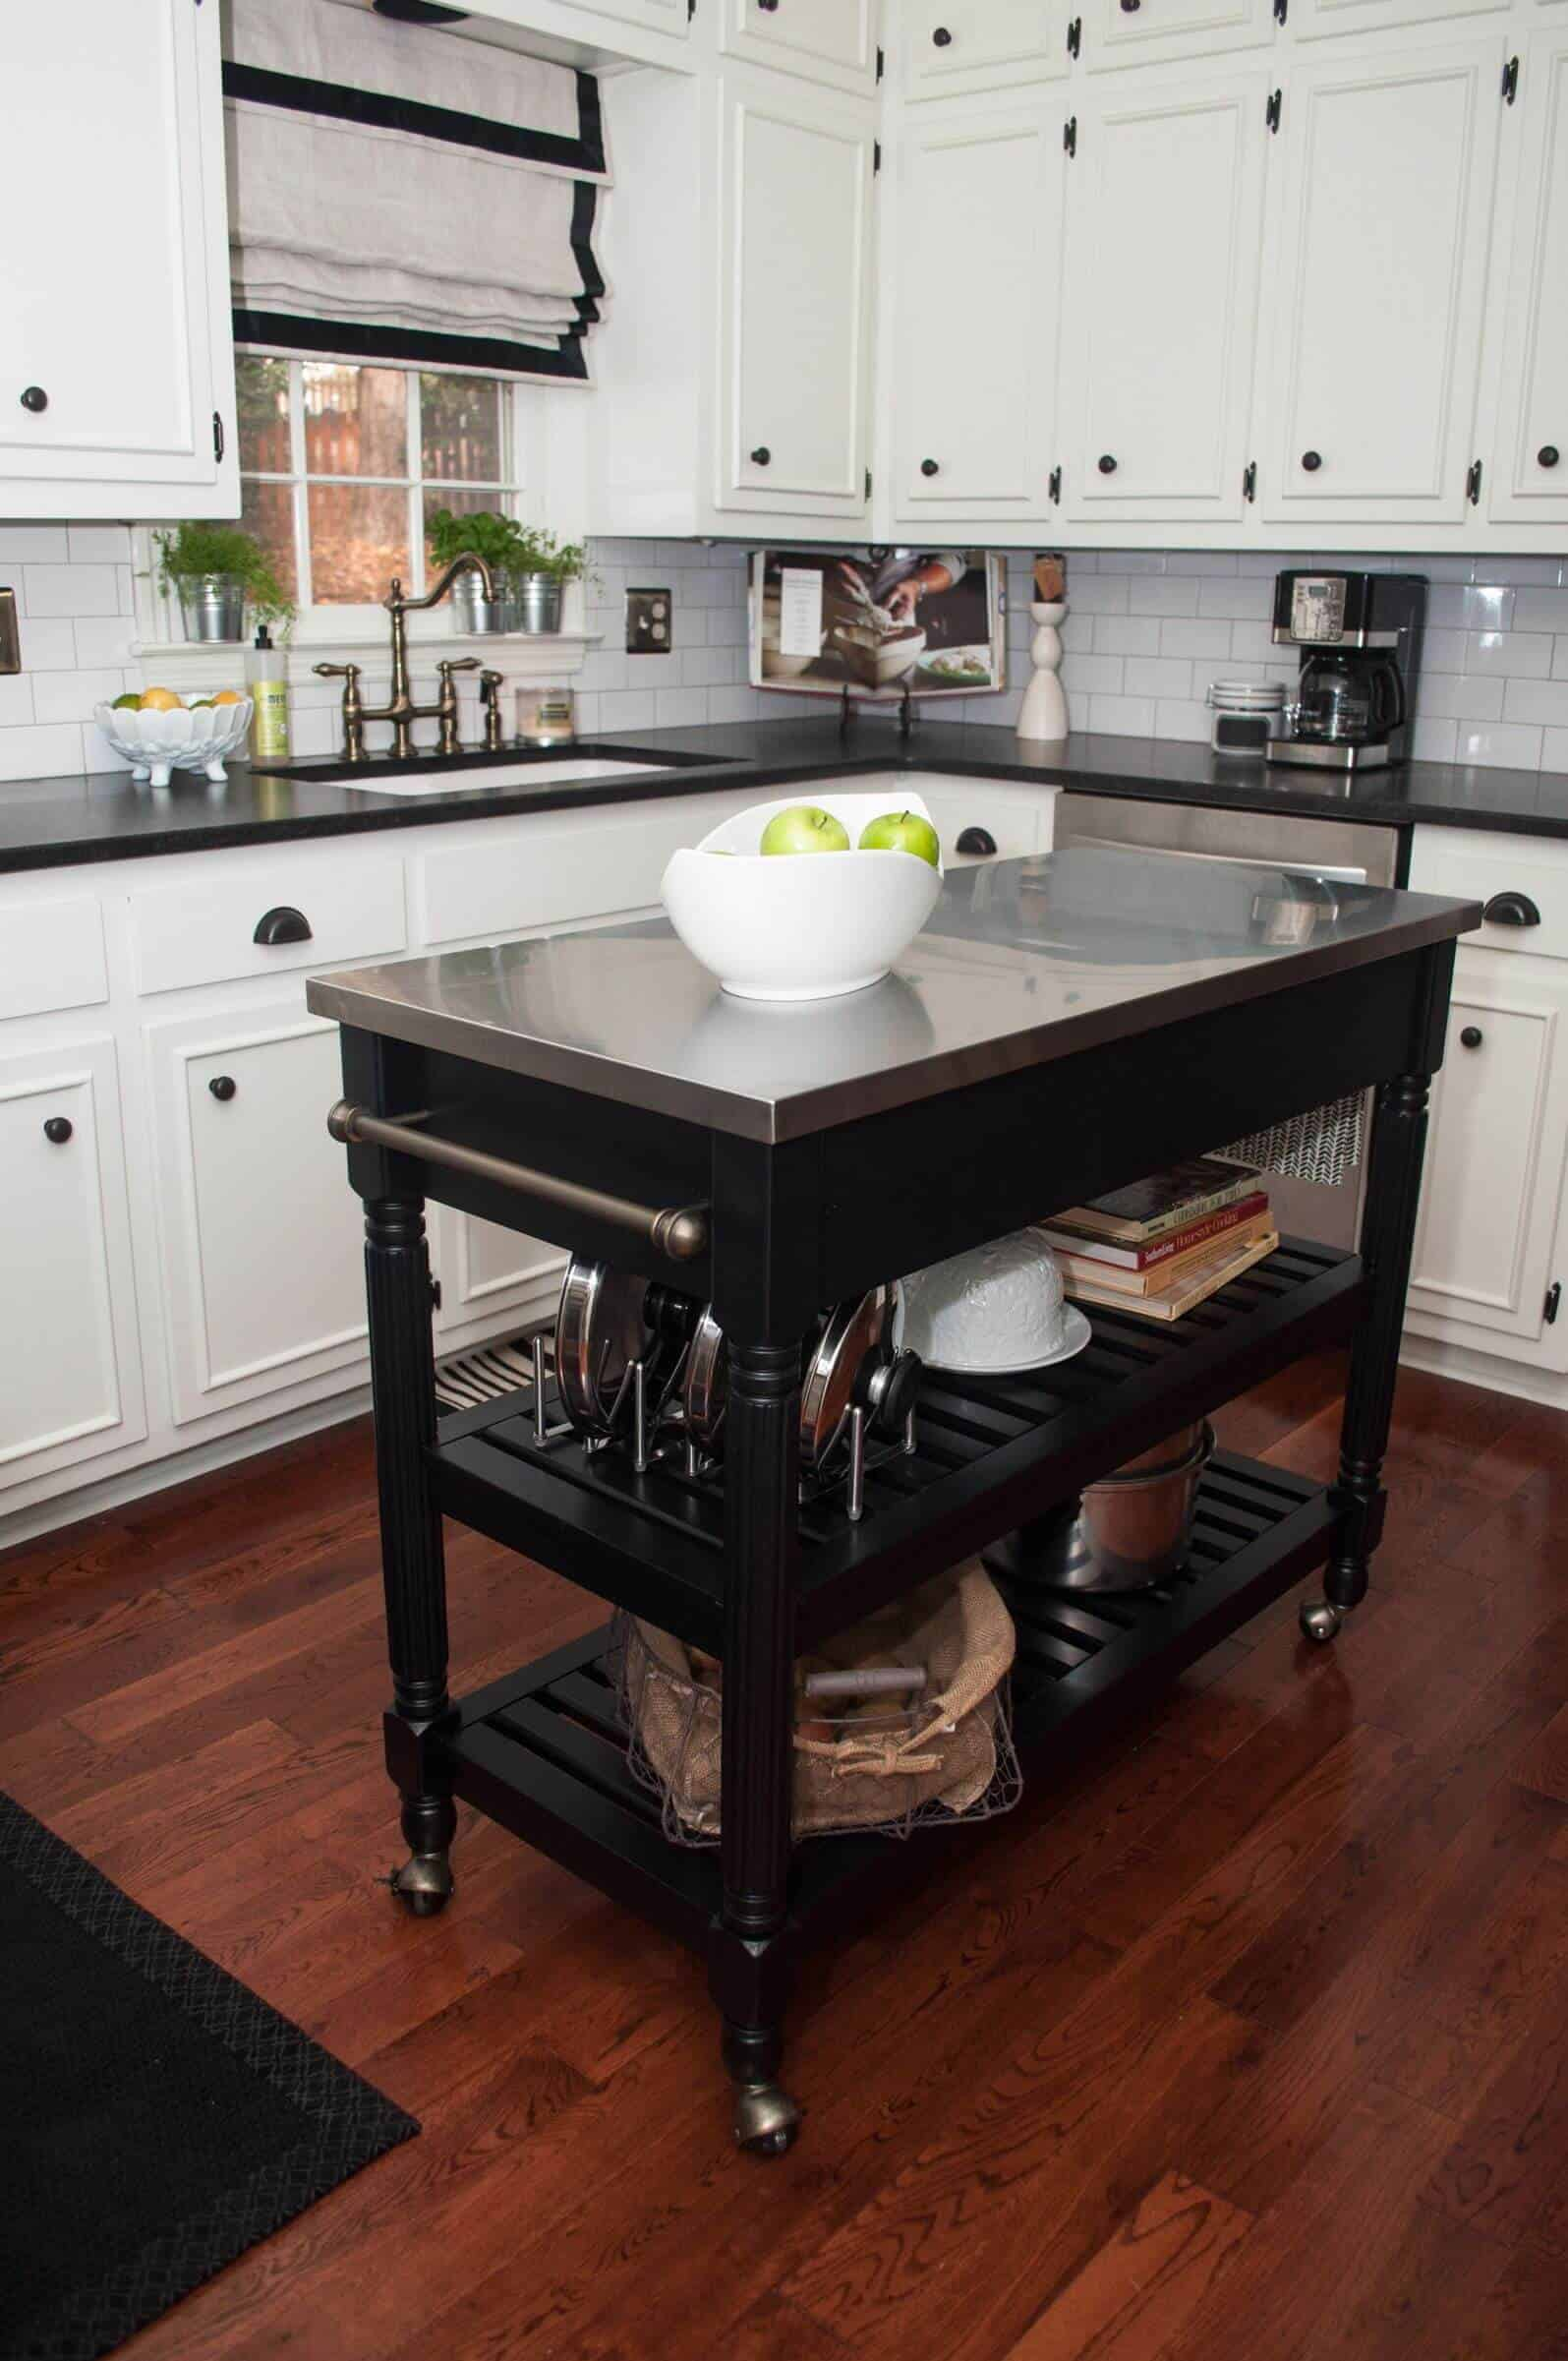 20 Clever Small Island Ideas for Your Kitchen (Photos) on luxury kitchen island, small kitchen remodel with island, design kitchen island, contemporary kitchen island,